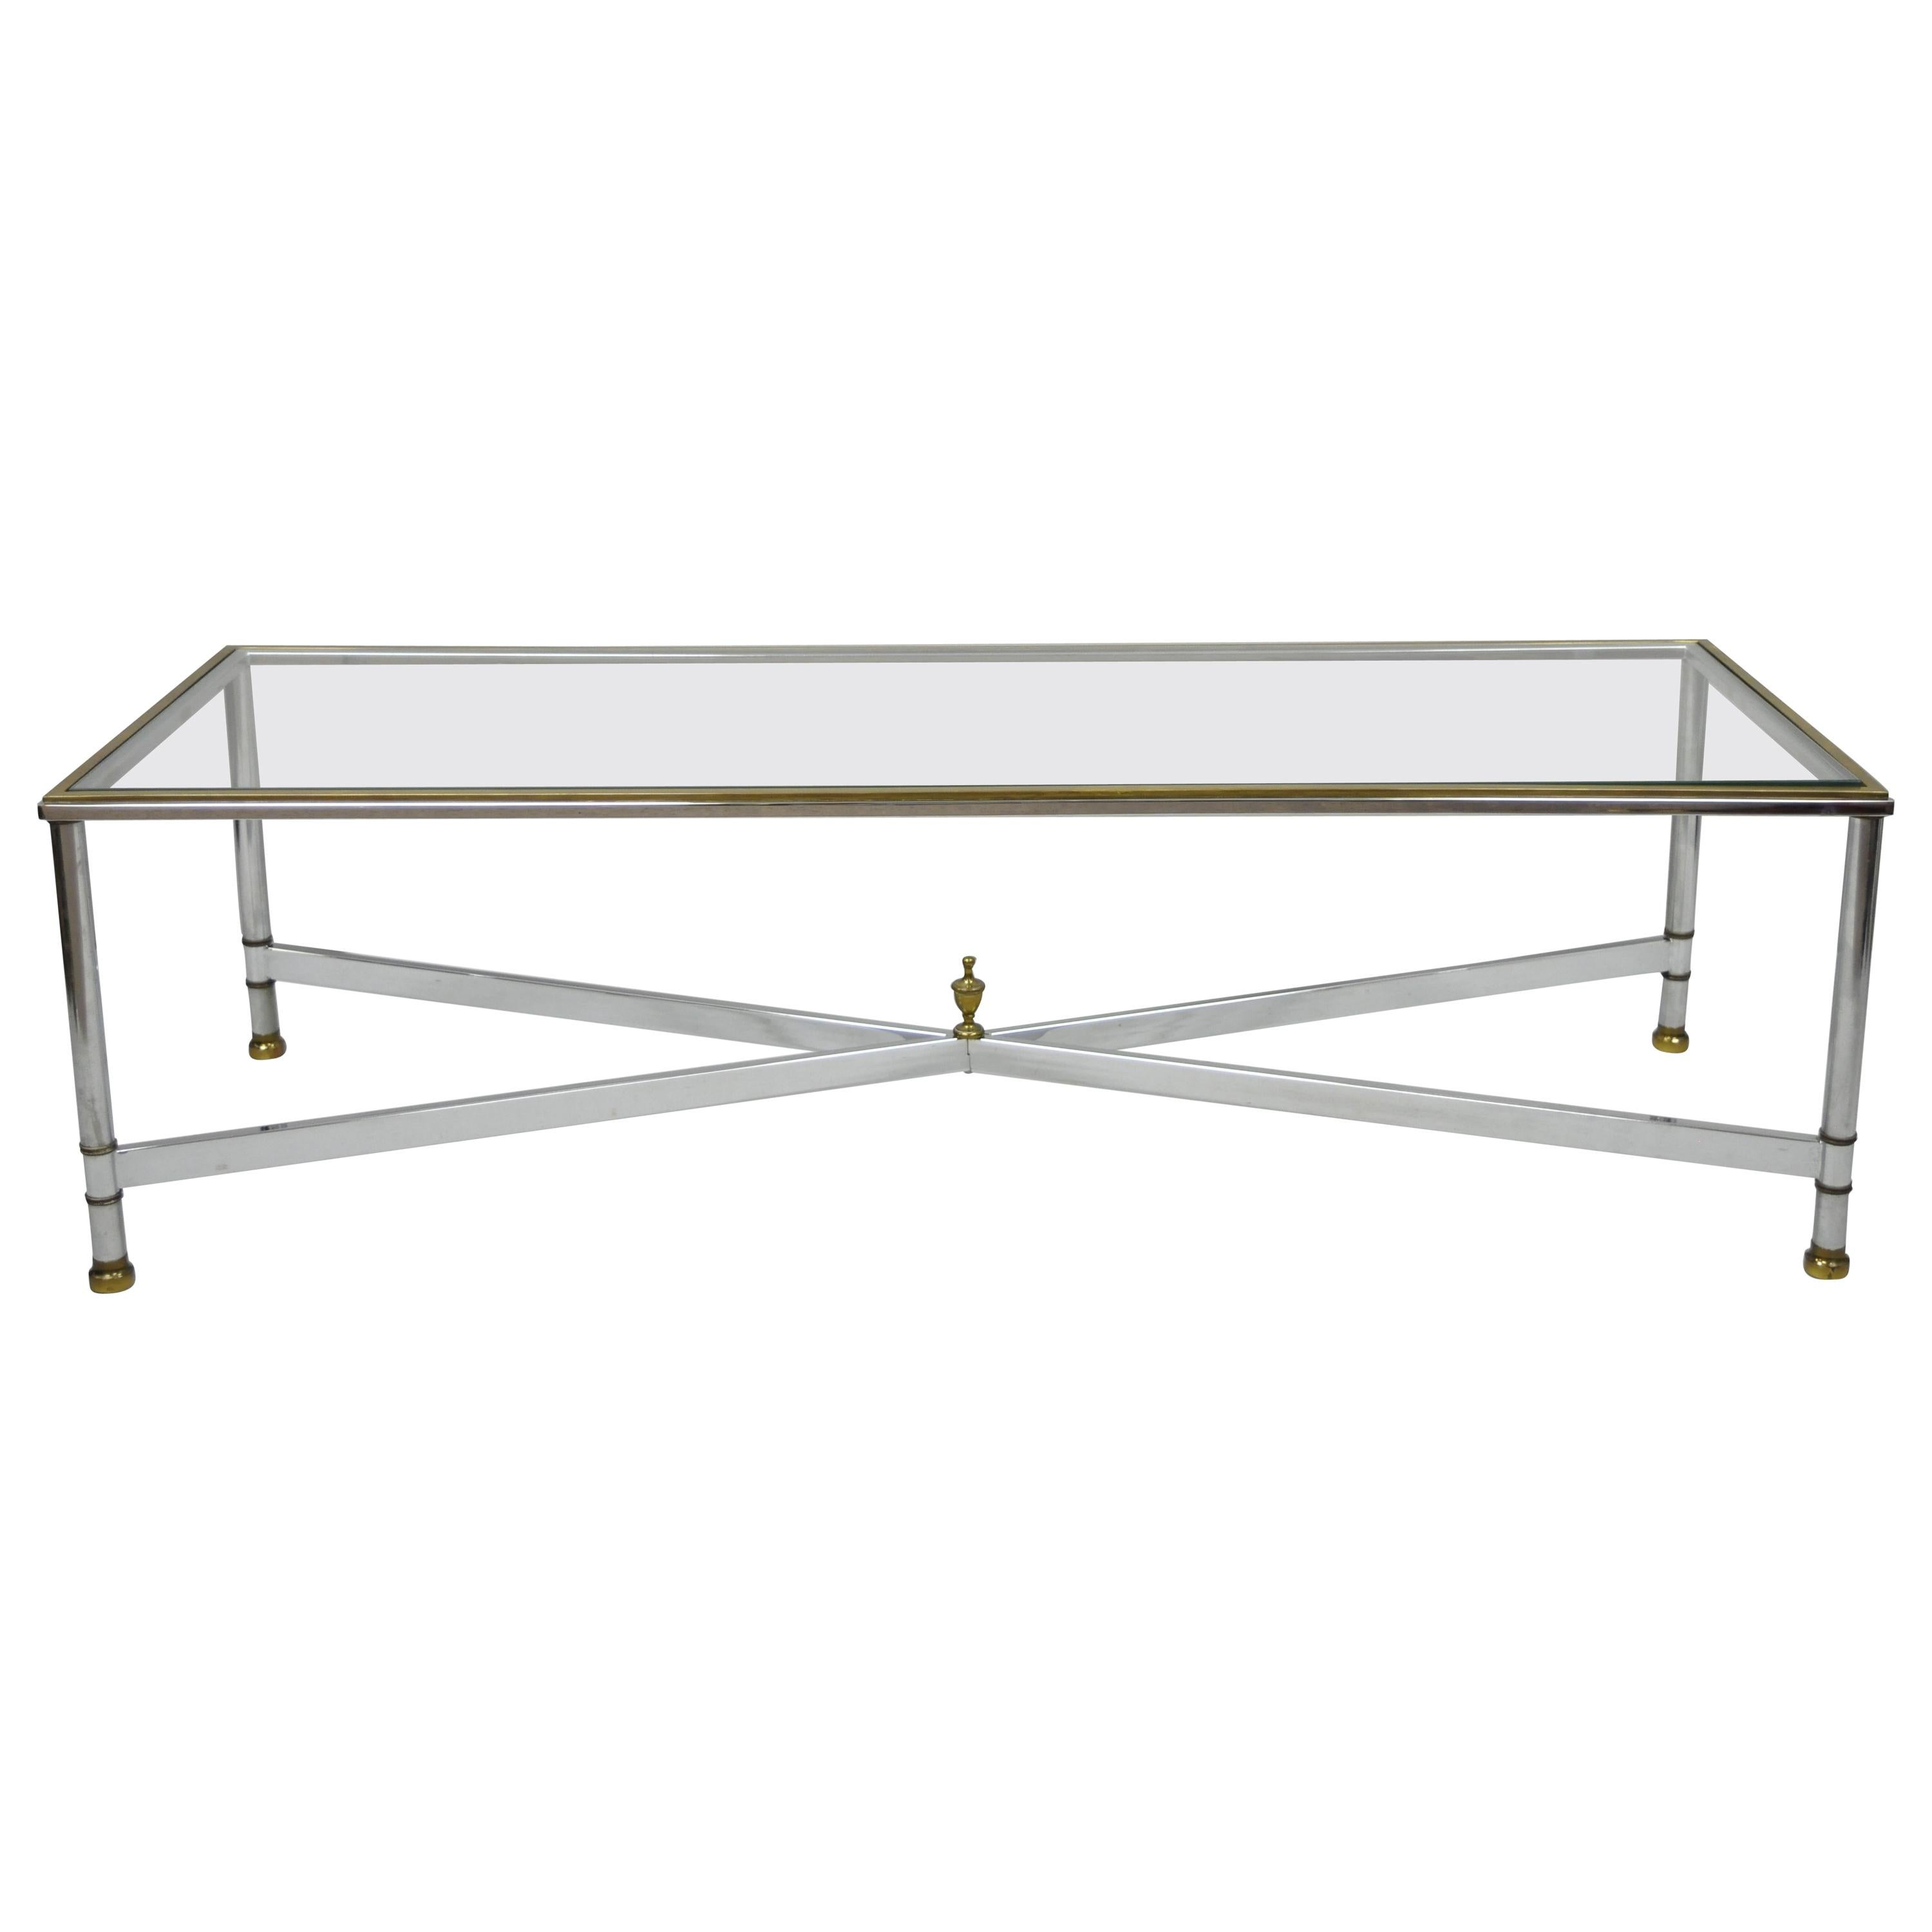 French Neoclassical Maison Jansen Style Steel & Brass Rectangular Coffee Table